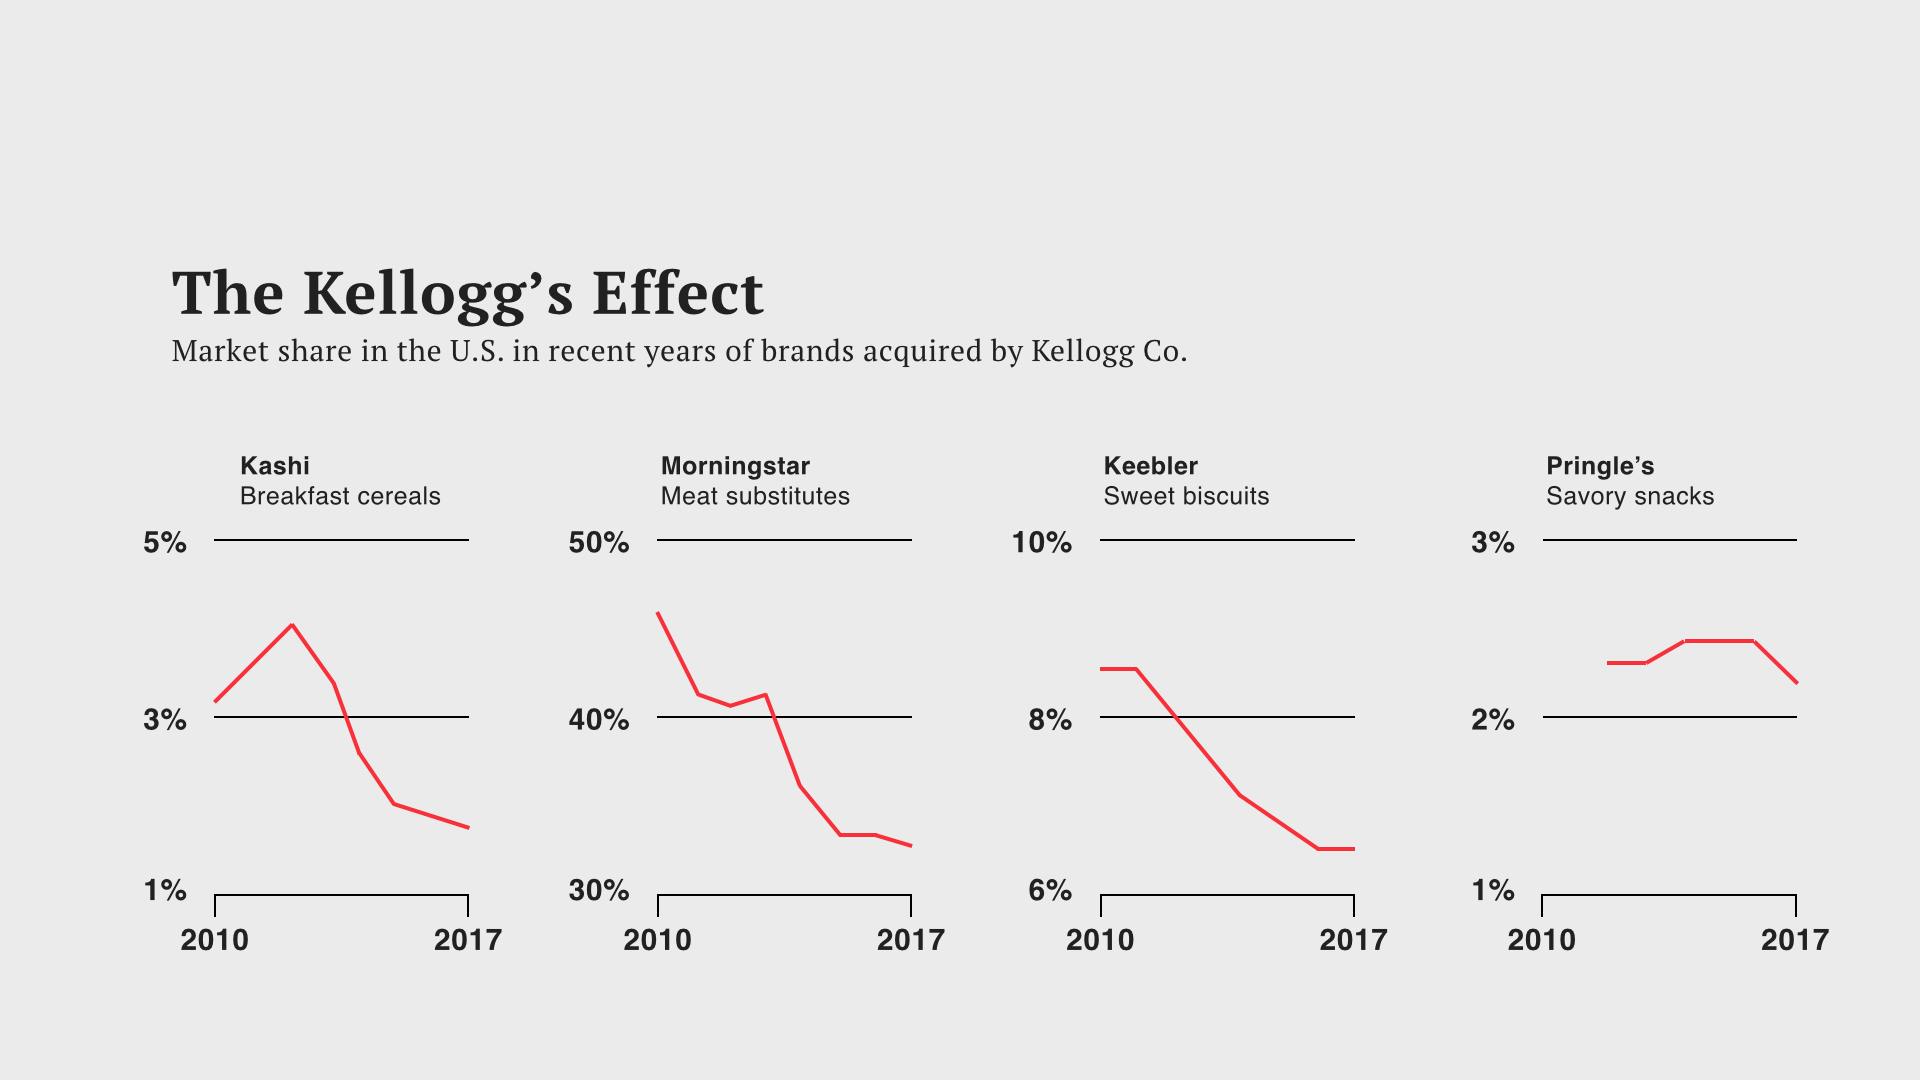 And this too isn't working. Popular brands acquired by Kellogg's have declined in market share, in just a few years of their acquisitions. So what does this all say? The food industry is at a tipping point…